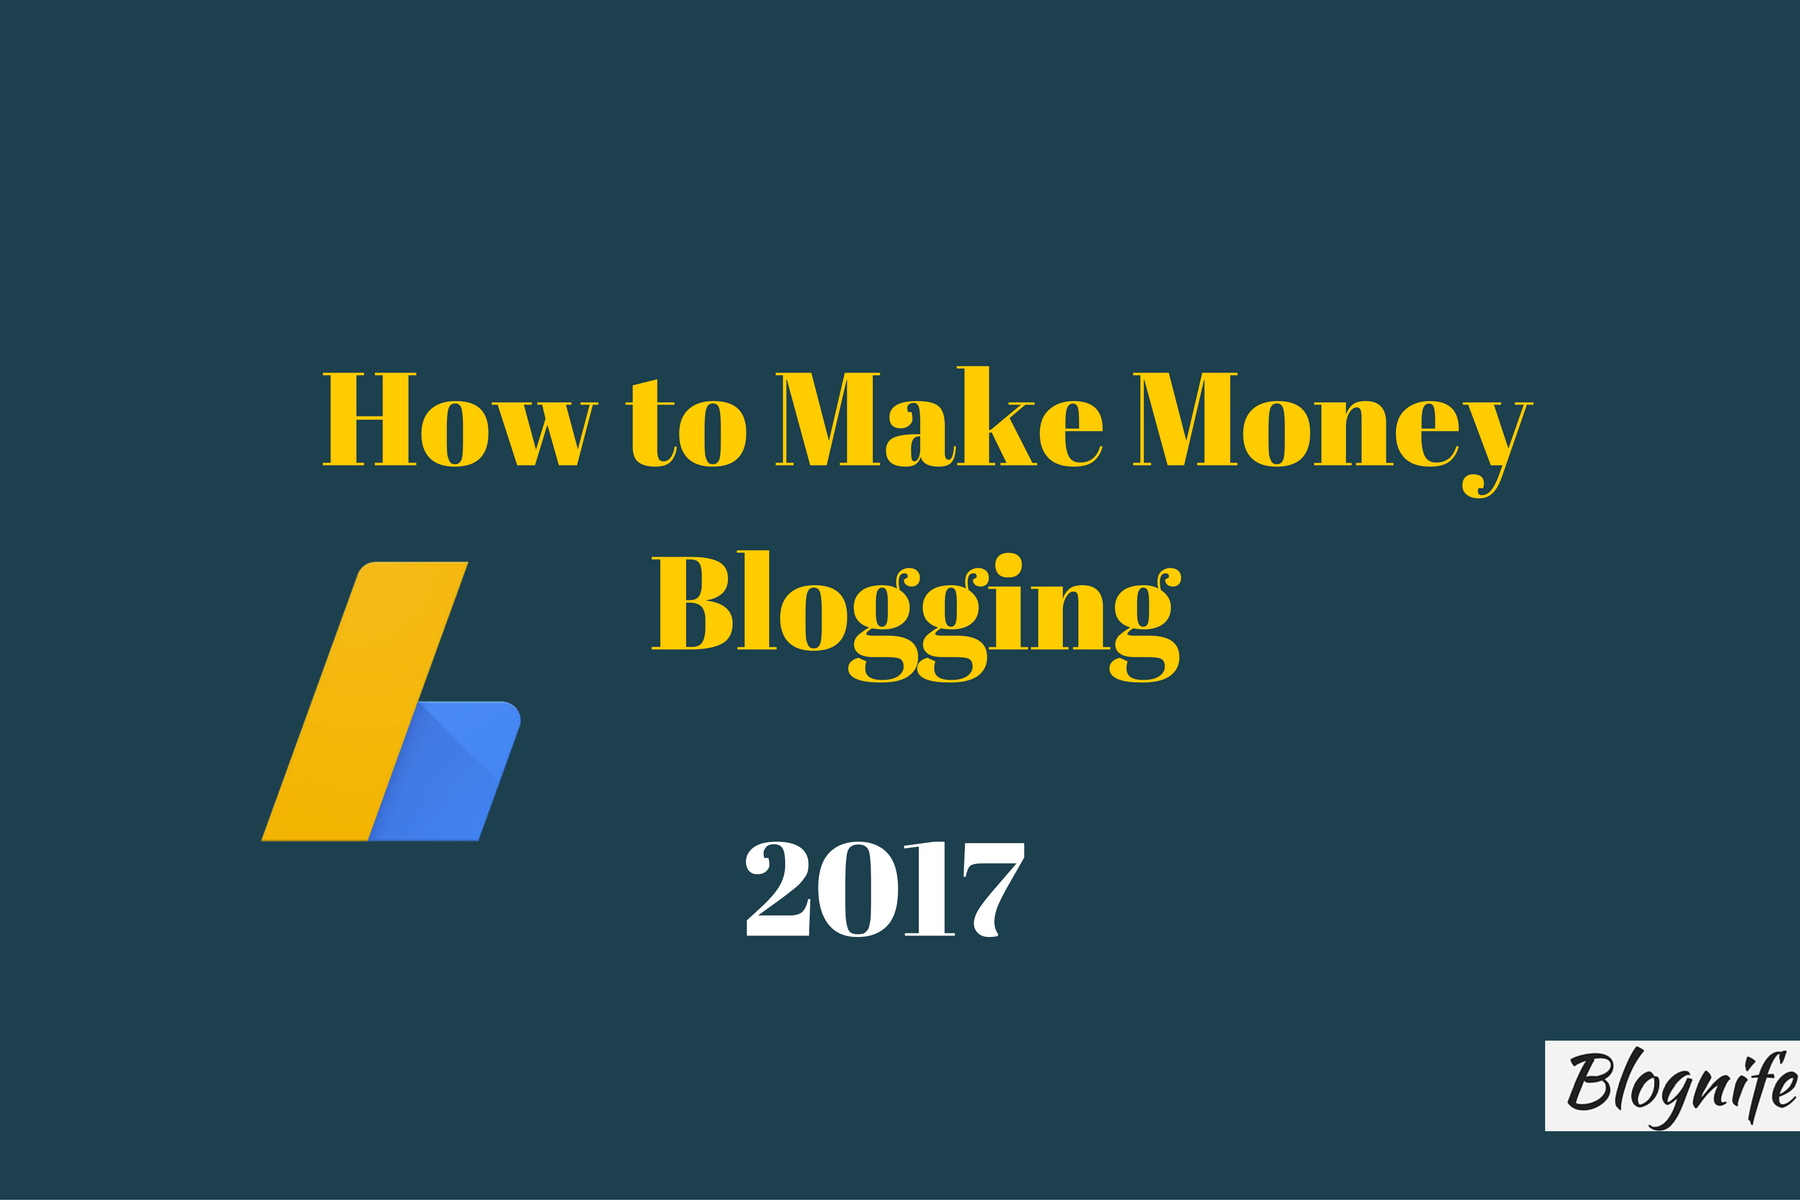 How to Make Money Blogging in 2017